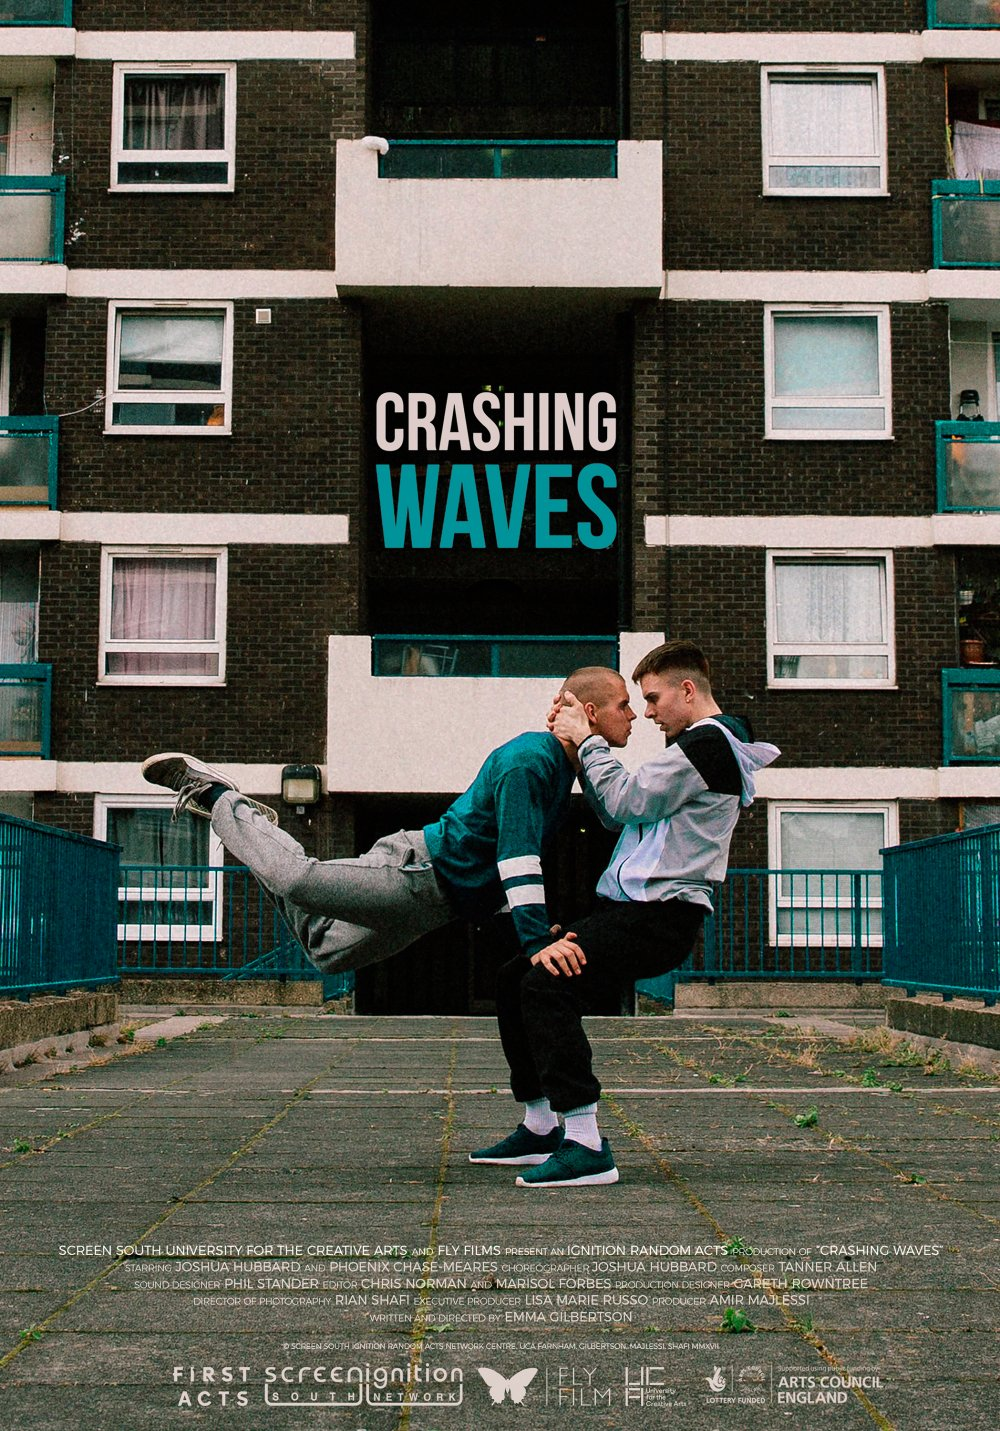 <strong>Crashing Waves</strong> (screening as part of the shorts programme The Way Things Are) – Against the backdrop of a high-rise housing estate, two young men connect